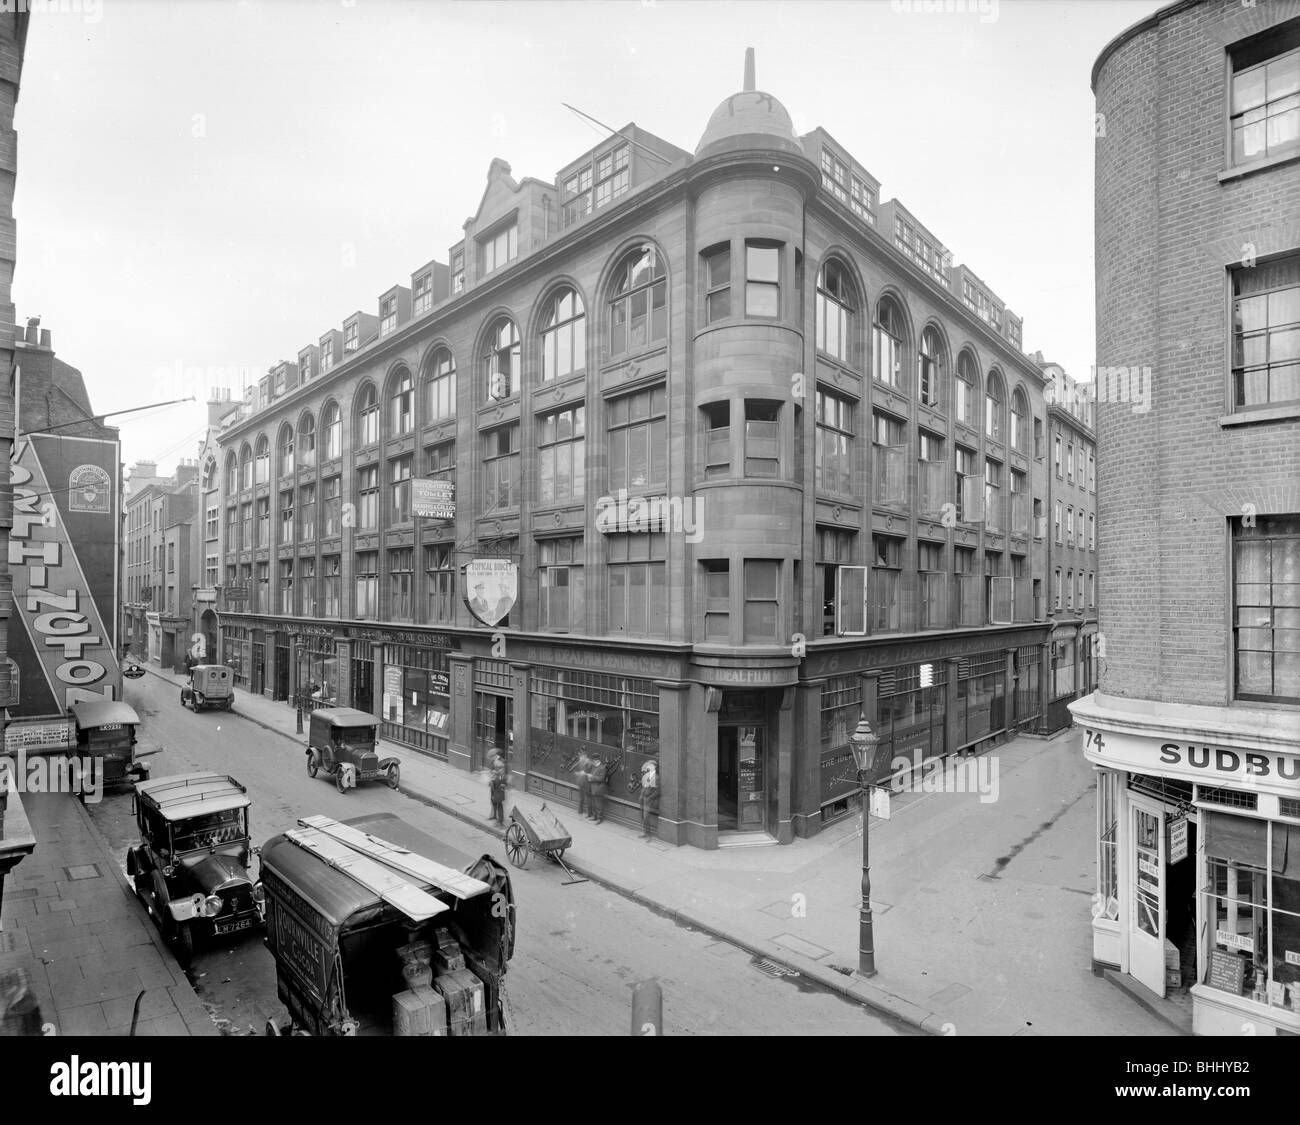 76-88 Wardour Street, Westminster, London, 1923. Artist: Bedford Lemere and Company - Stock Image